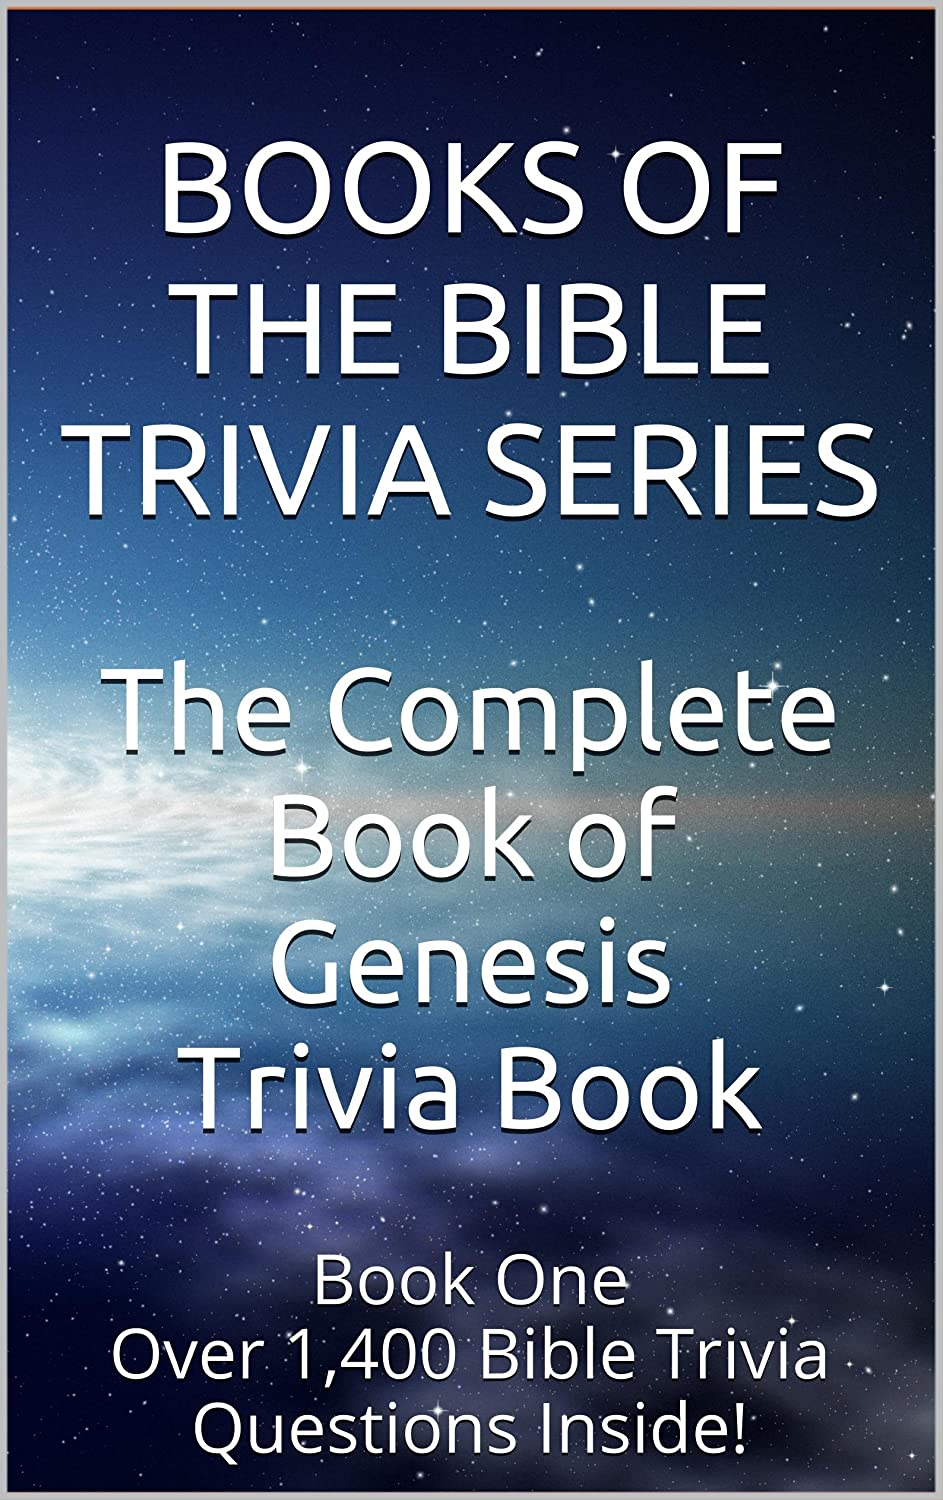 The Complete Book of Genesis Trivia Book: Over 1,400 Bible Trivia Questions Inside! by Tyra Buburuz